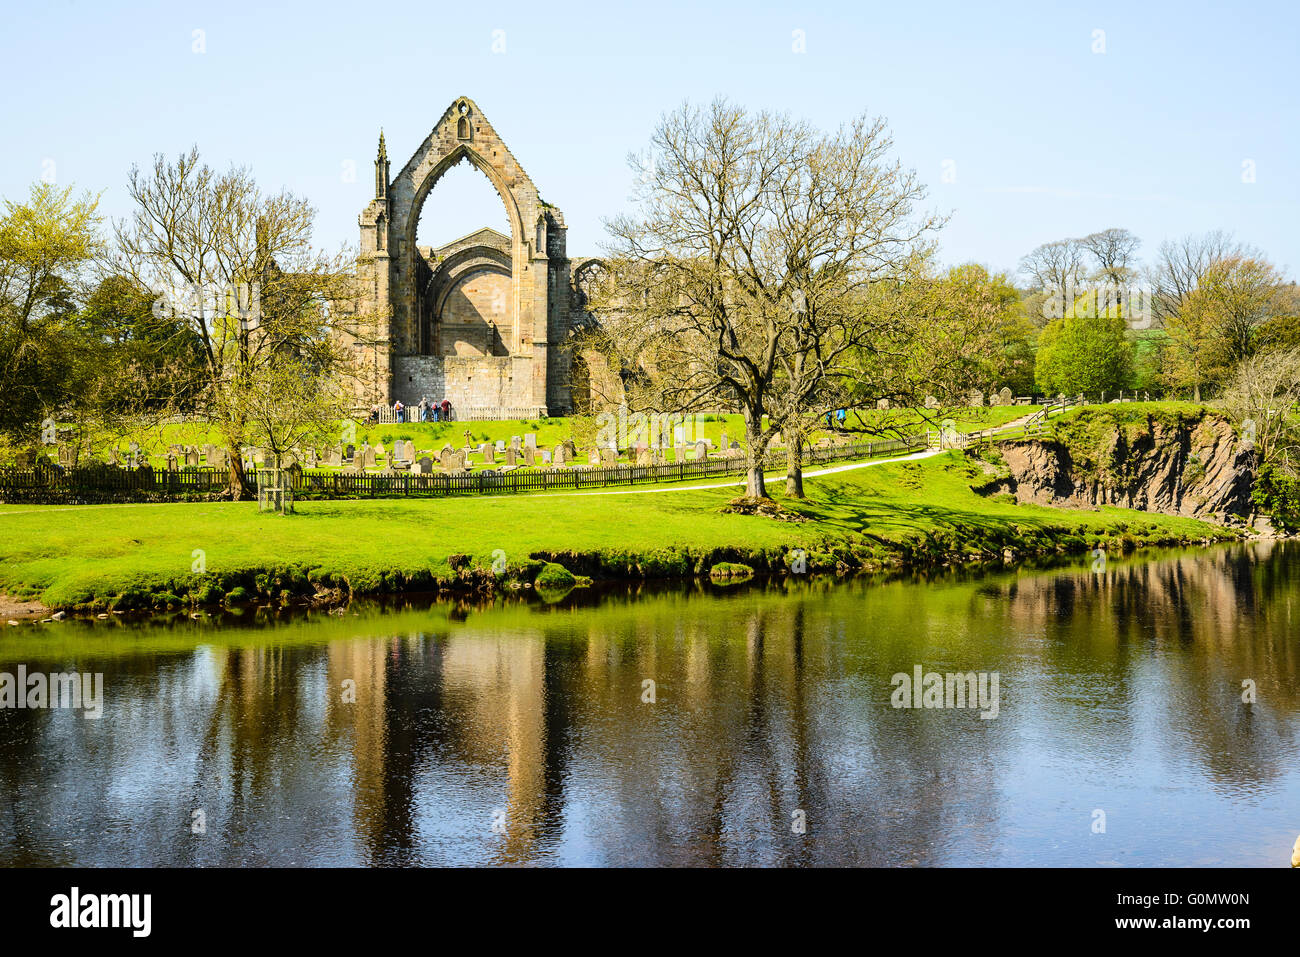 Looking across the River Wharfe to the ruins of Bolton Abbey, North Yorkshire - Stock Image